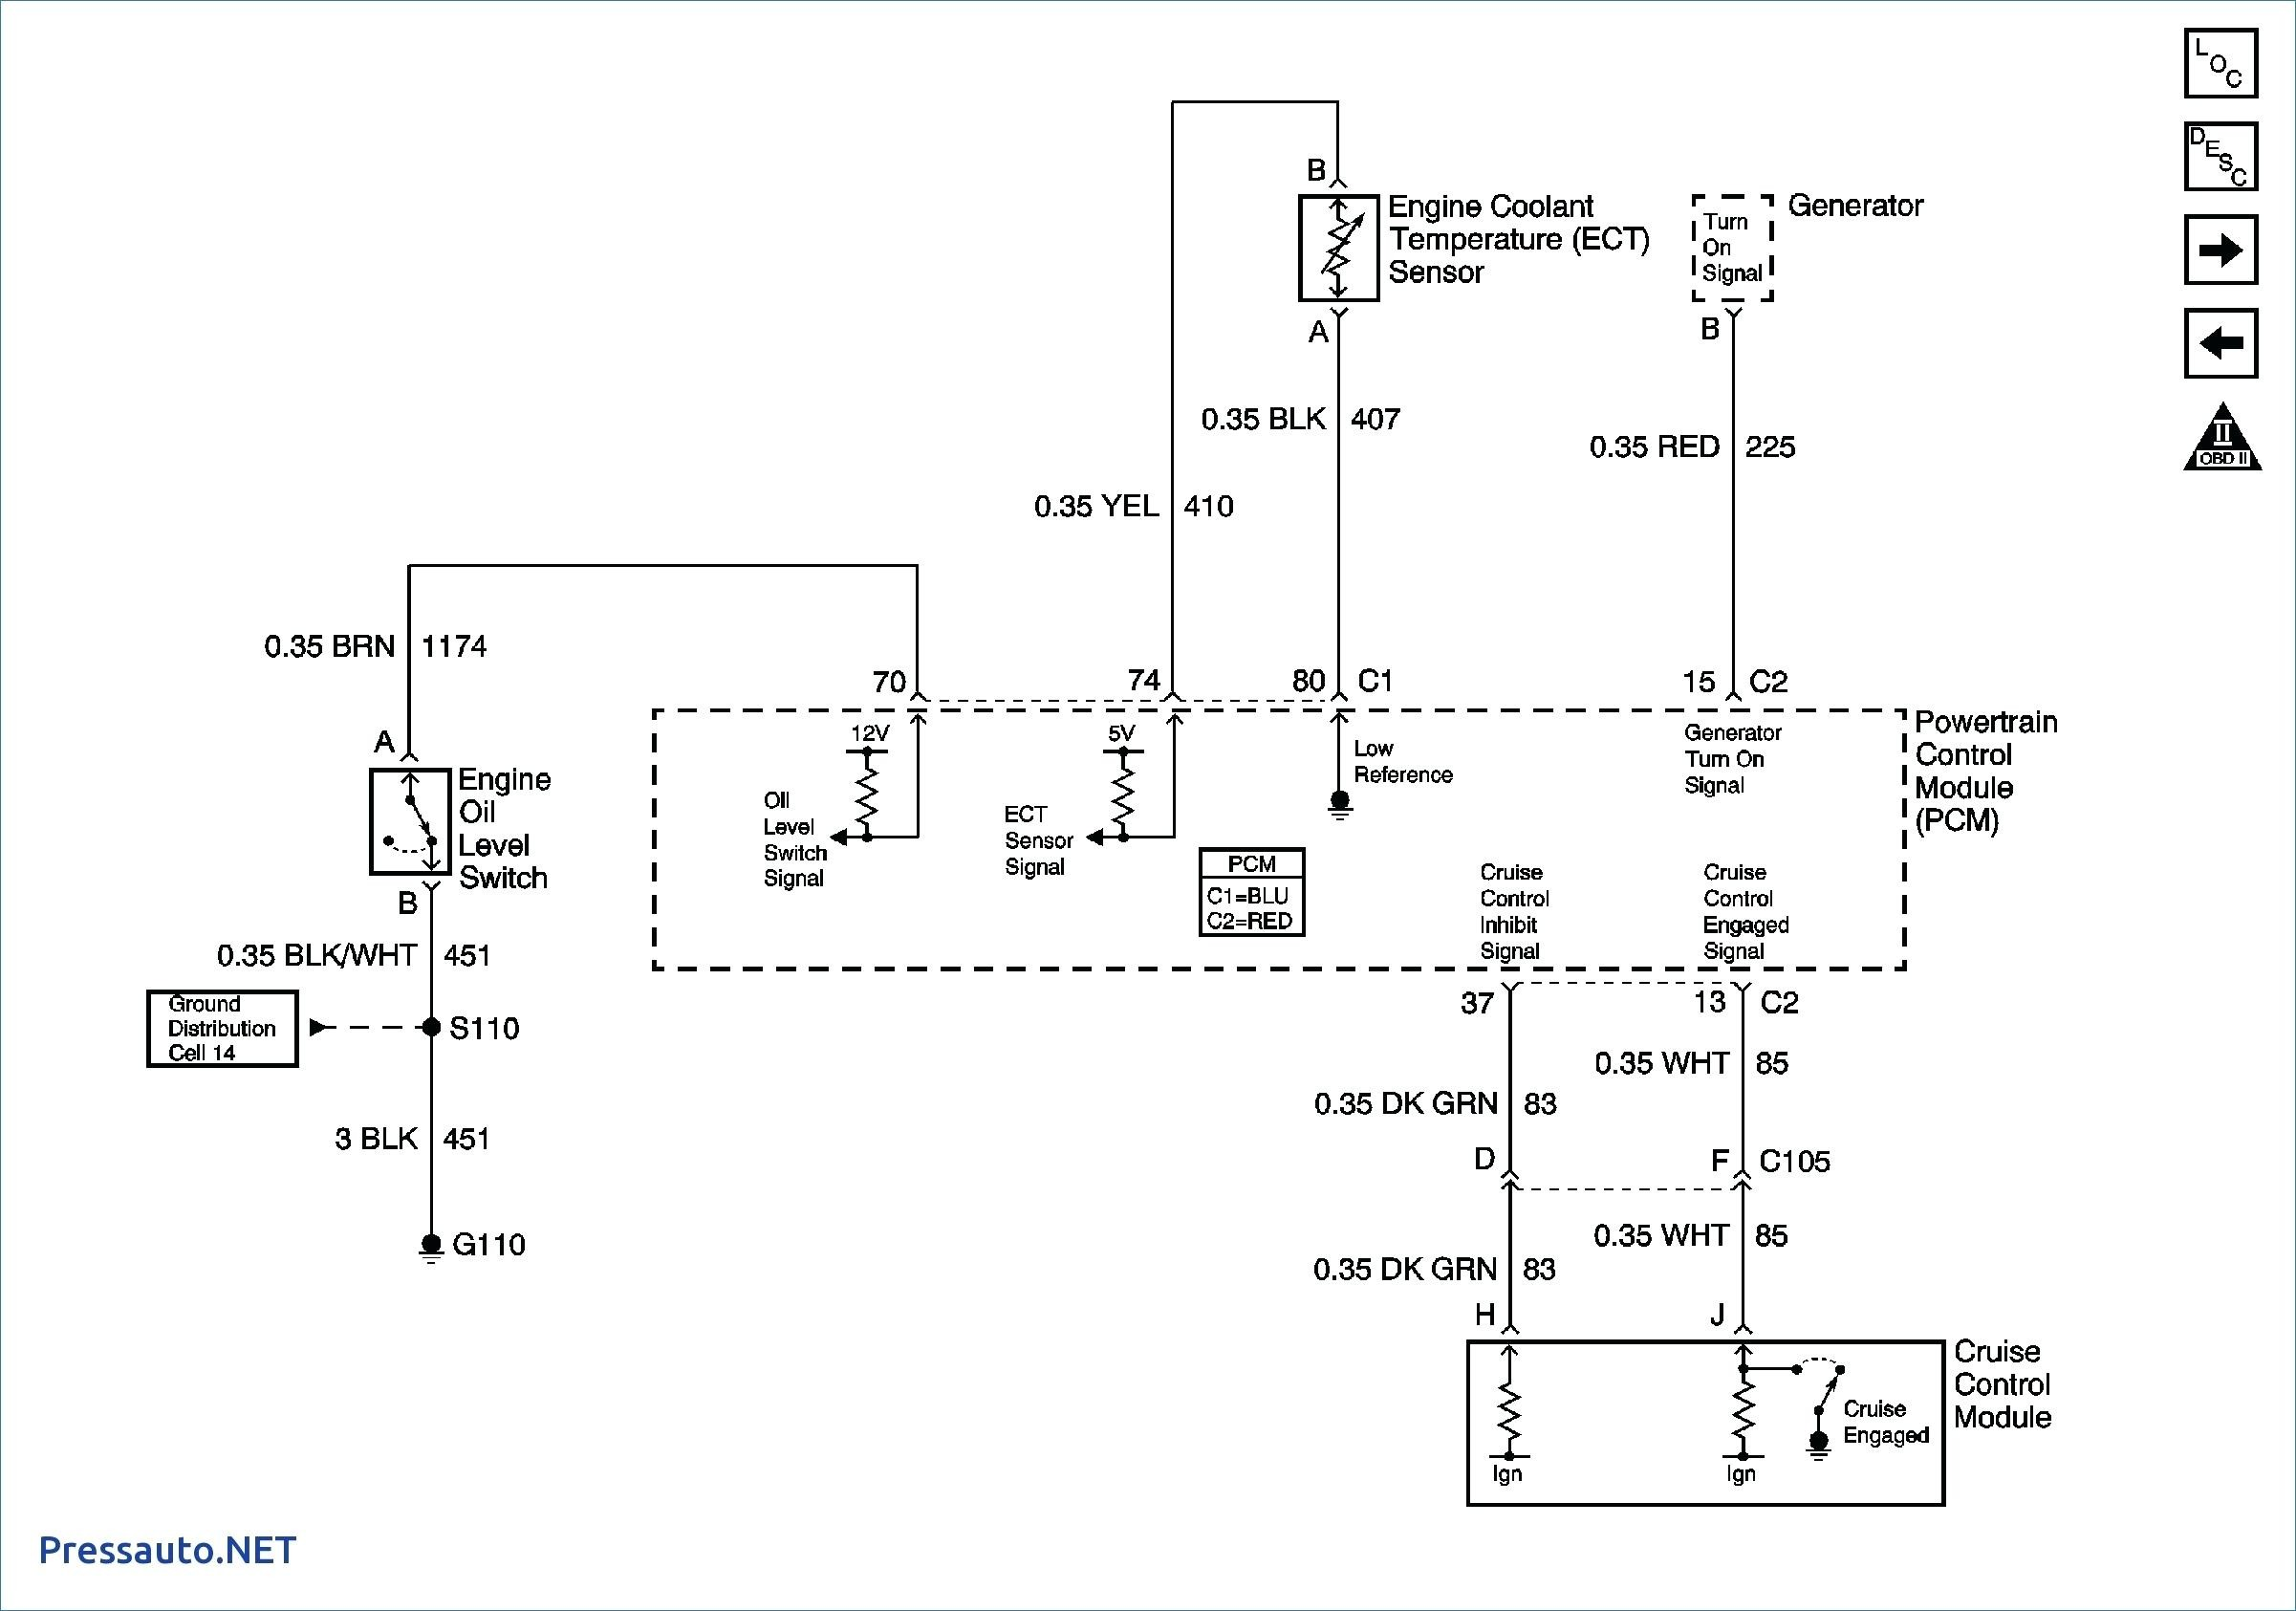 Caravan Water Pump Wiring Diagram Diagrams Schematics Well Schematic Pressure Switch Image Black Tank Full Size Of Electric For